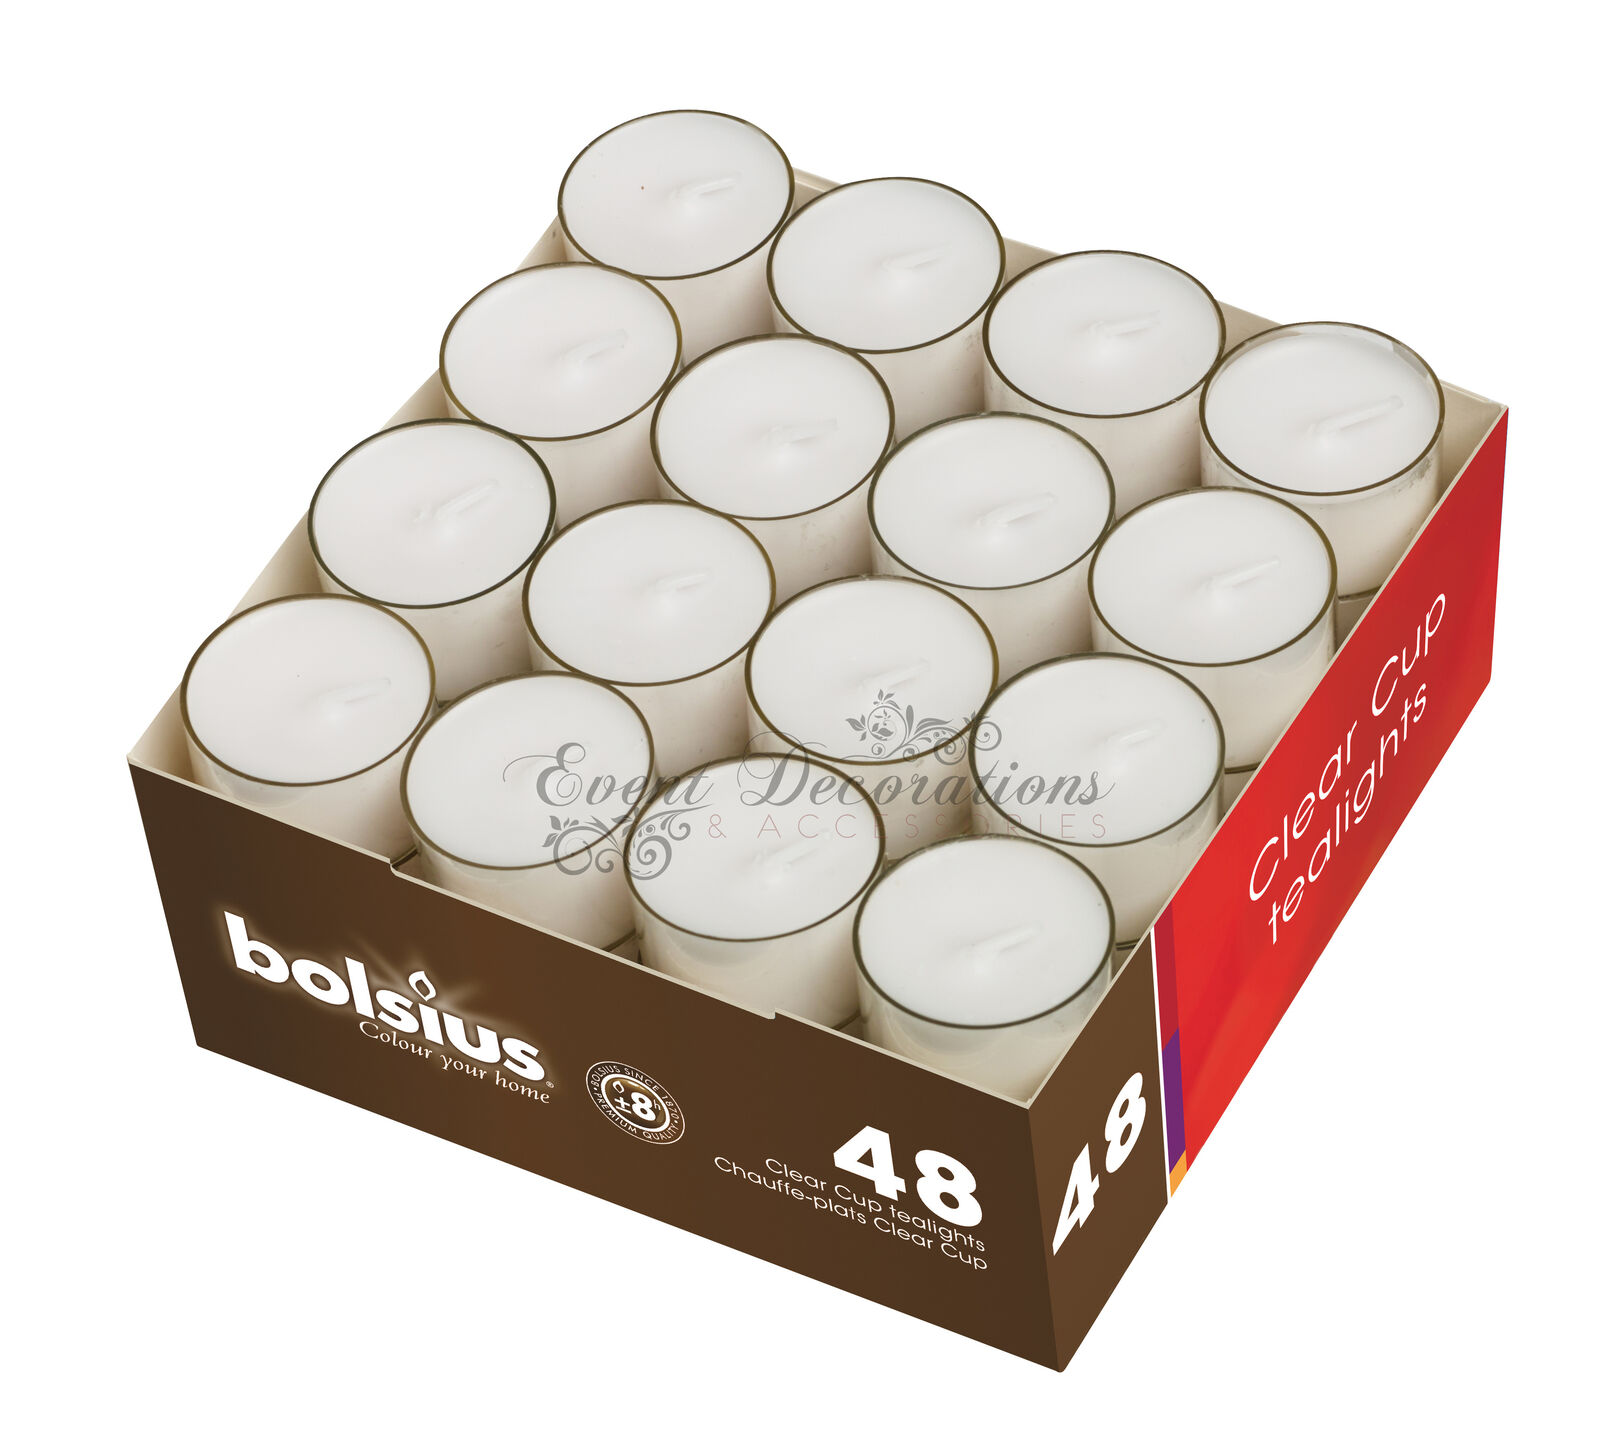 BOLSIUS 8 HOUR CLEAR CUP TEALIGHTS - BOX OF 48 - PERFECT FOR EVENTS & WEDDINGS